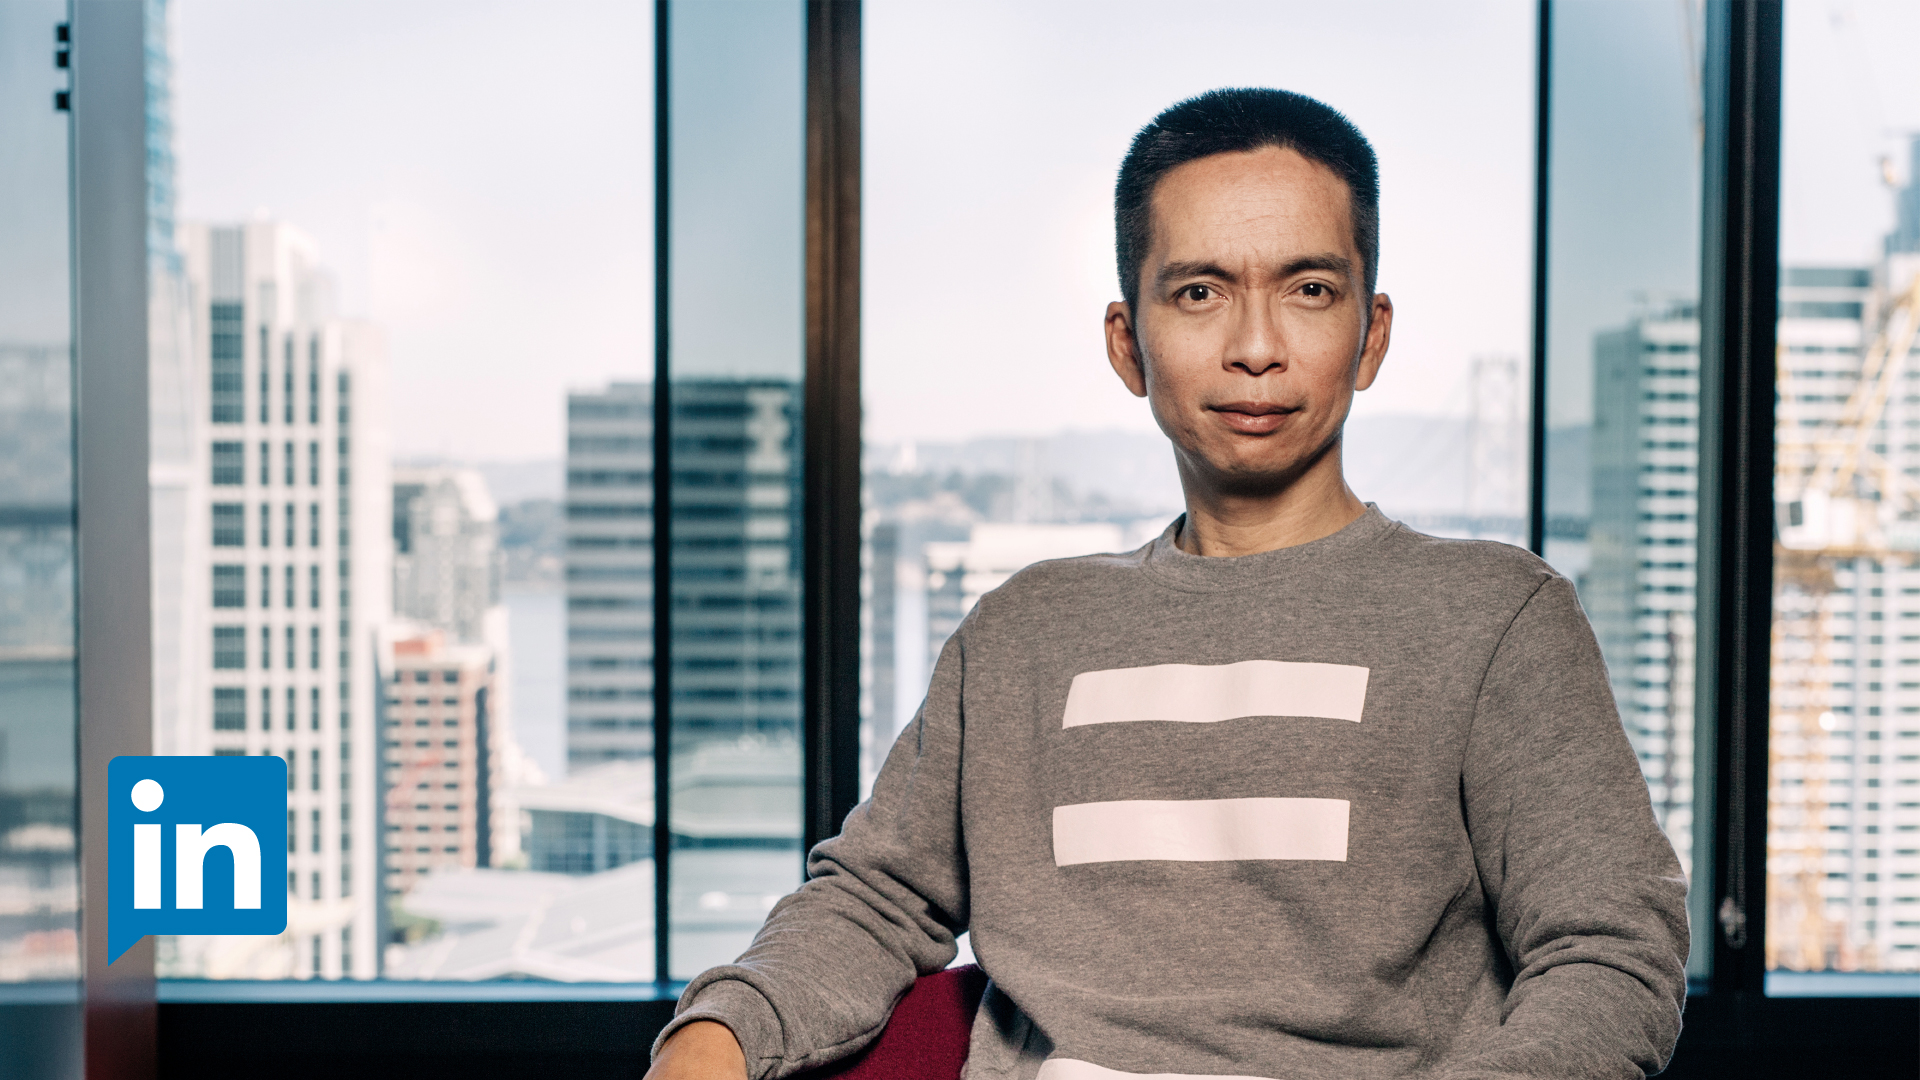 Welcome: John Maeda on Design, Business, and Inclusion